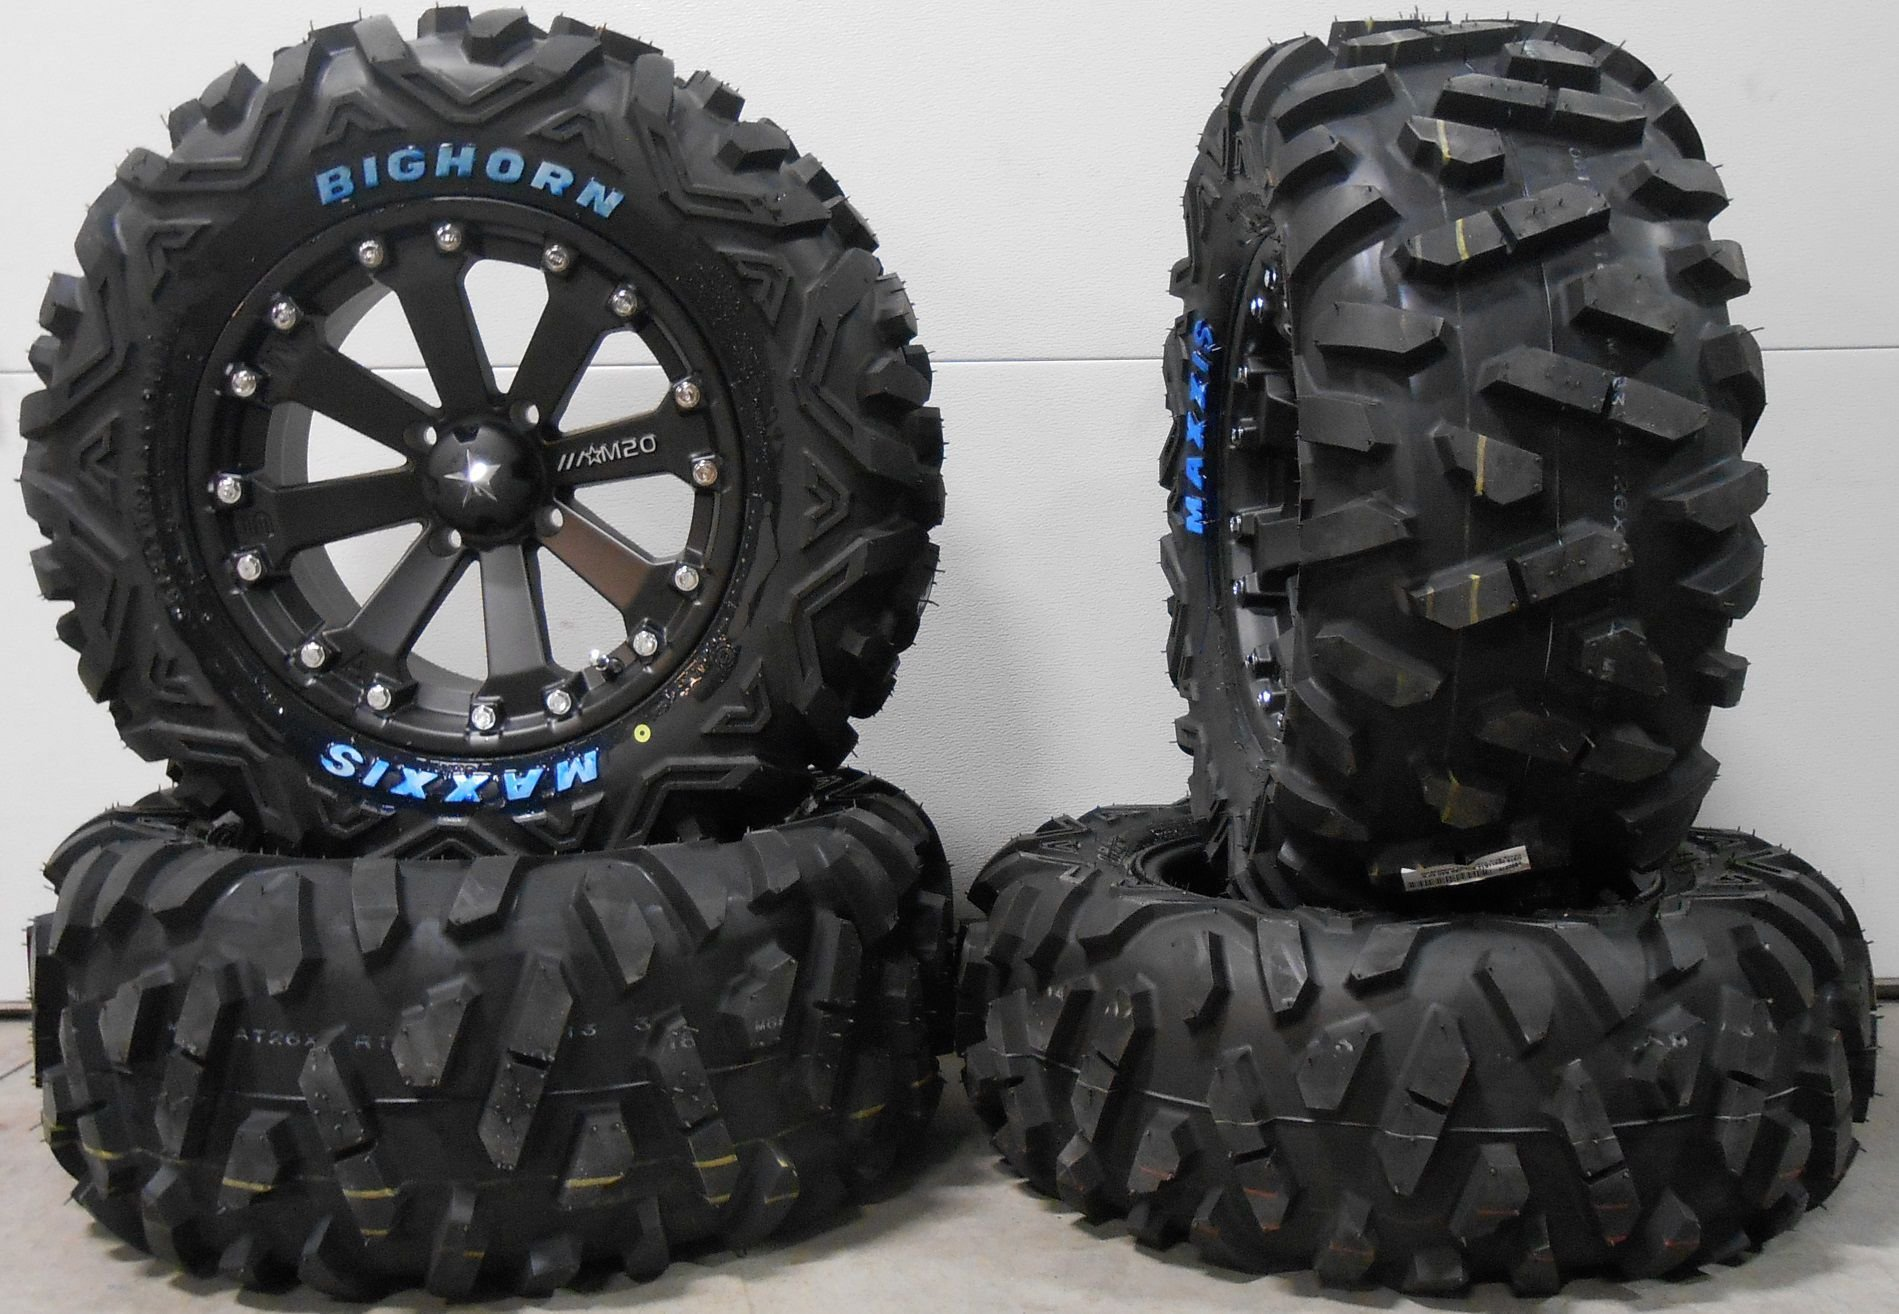 Bundle - 9 Items: MSA Black Kore 14'' ATV Wheels 26'' BigHorn Tires [4x156 Bolt Pattern 3/8x24 Lug Kit]